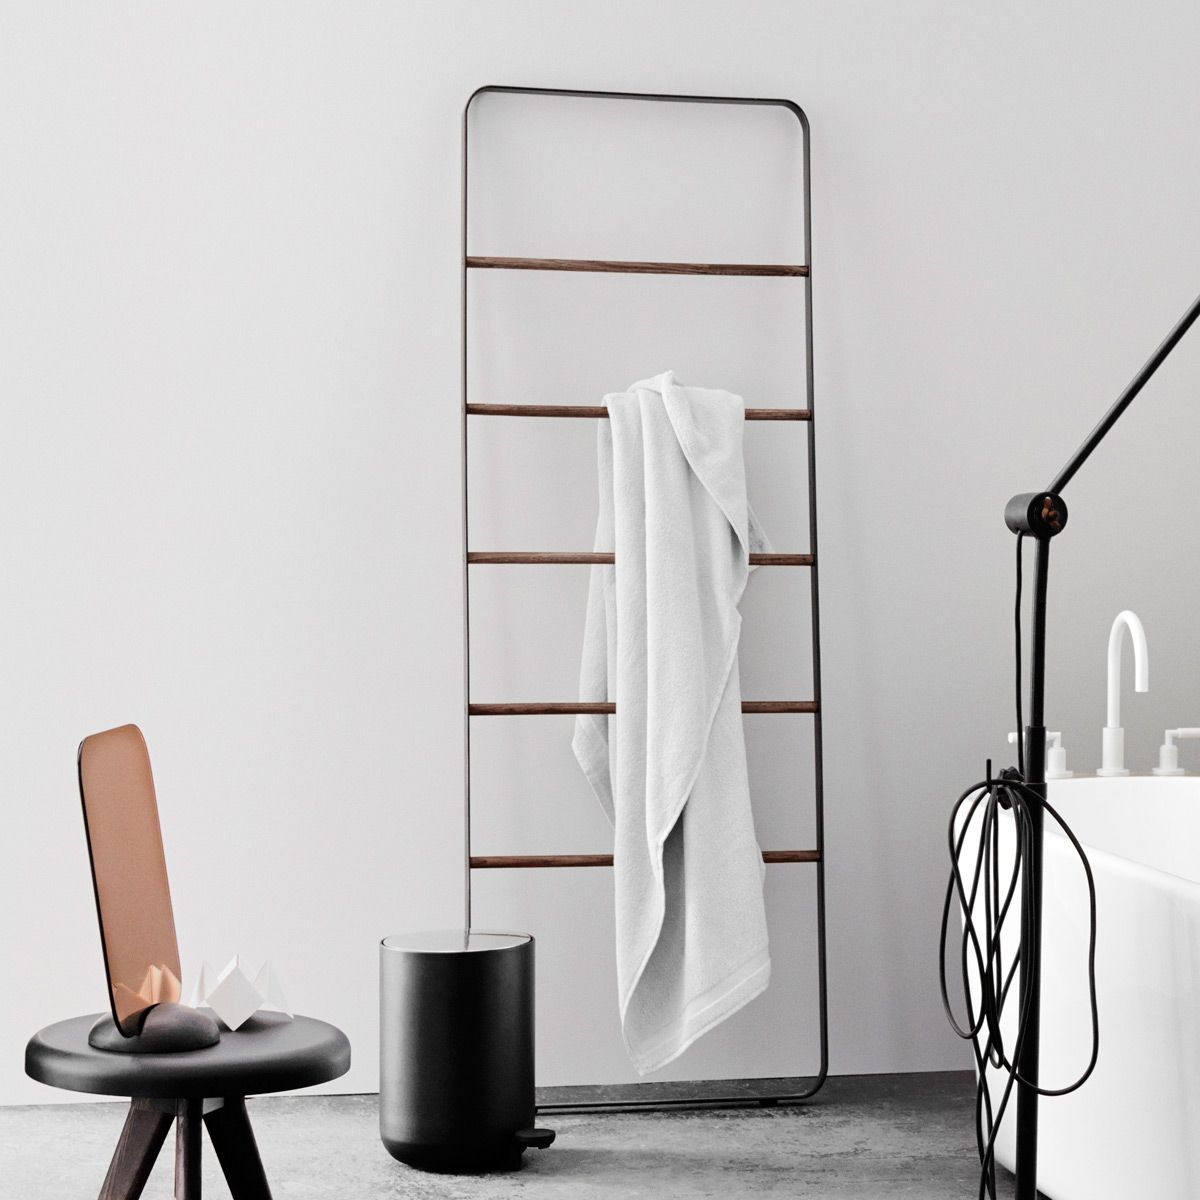 Bathroom floor towel racks - Modern Towel Ladder Stands For Bathroom Floor Towel Rack Free Standing Towel Rack Brushed Nickel Bathroom Gallery Accessories